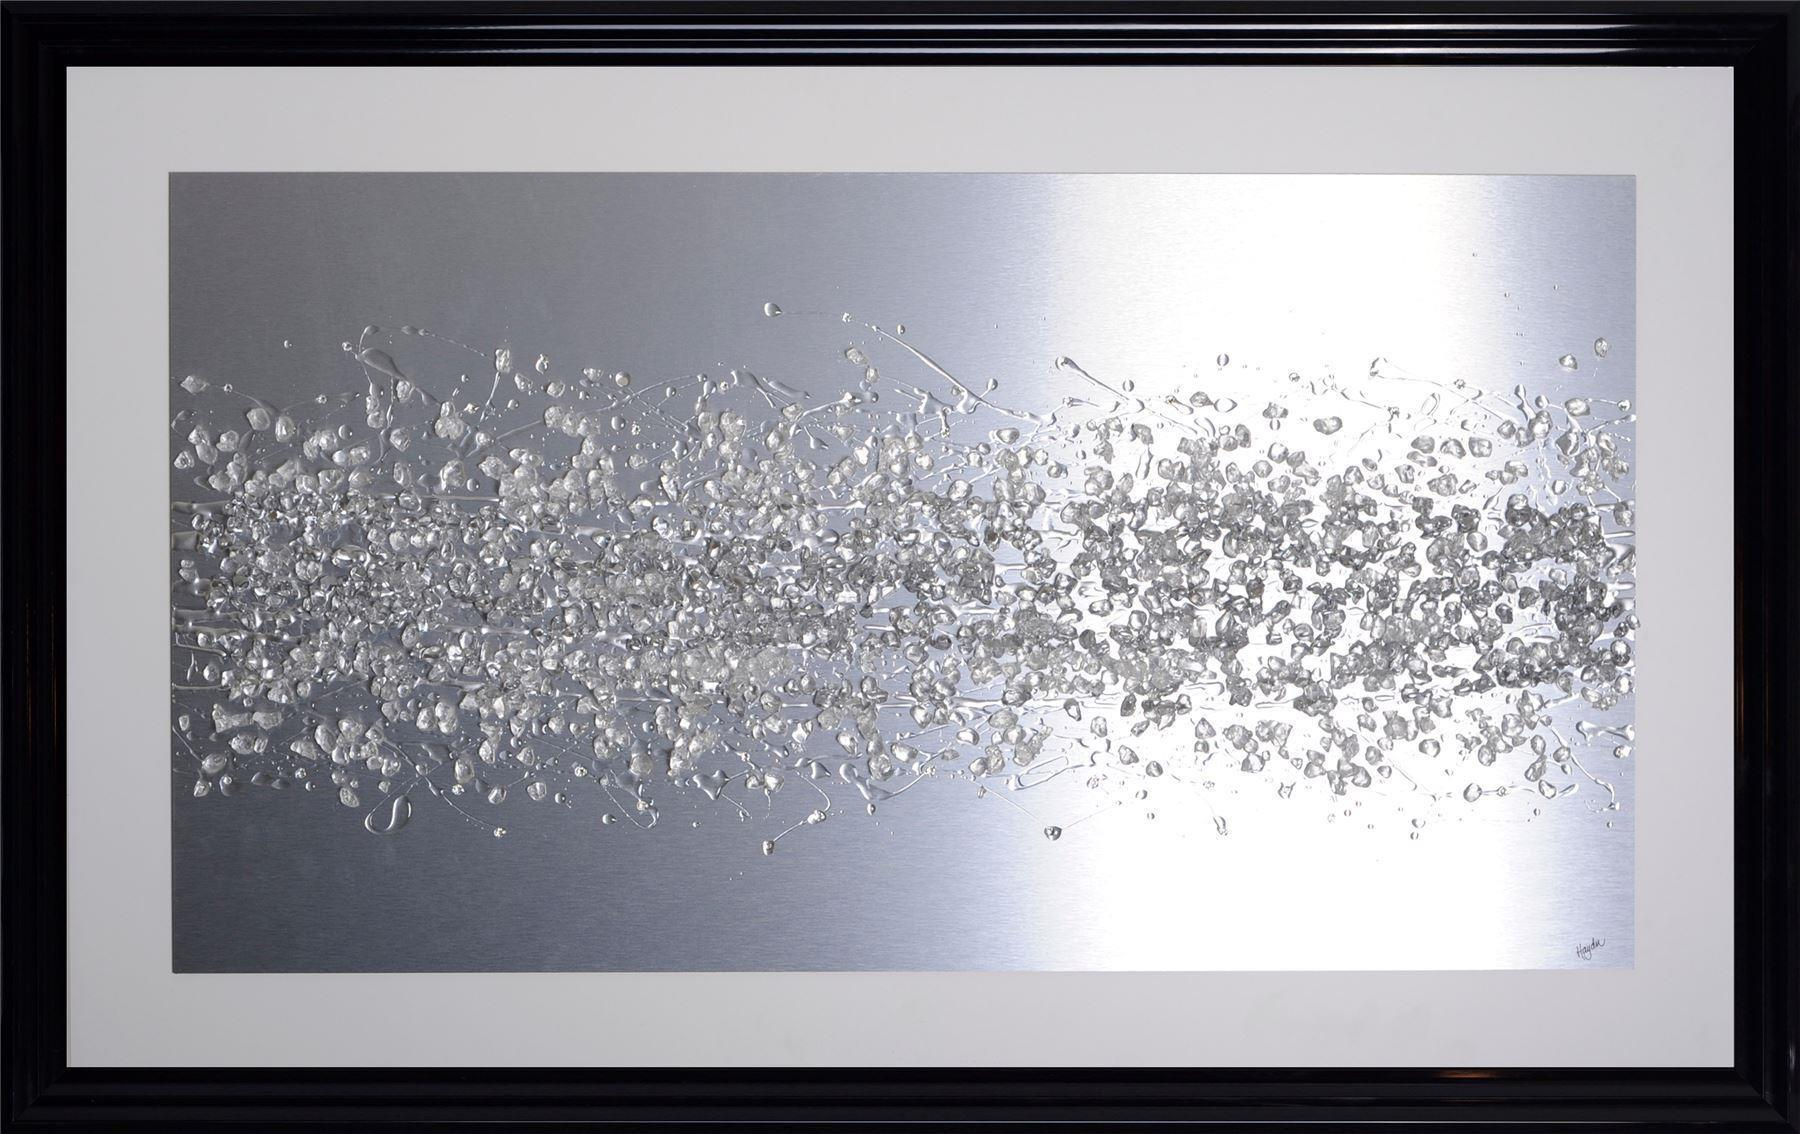 Framed 1wall Aluminium Liquid Wall Art